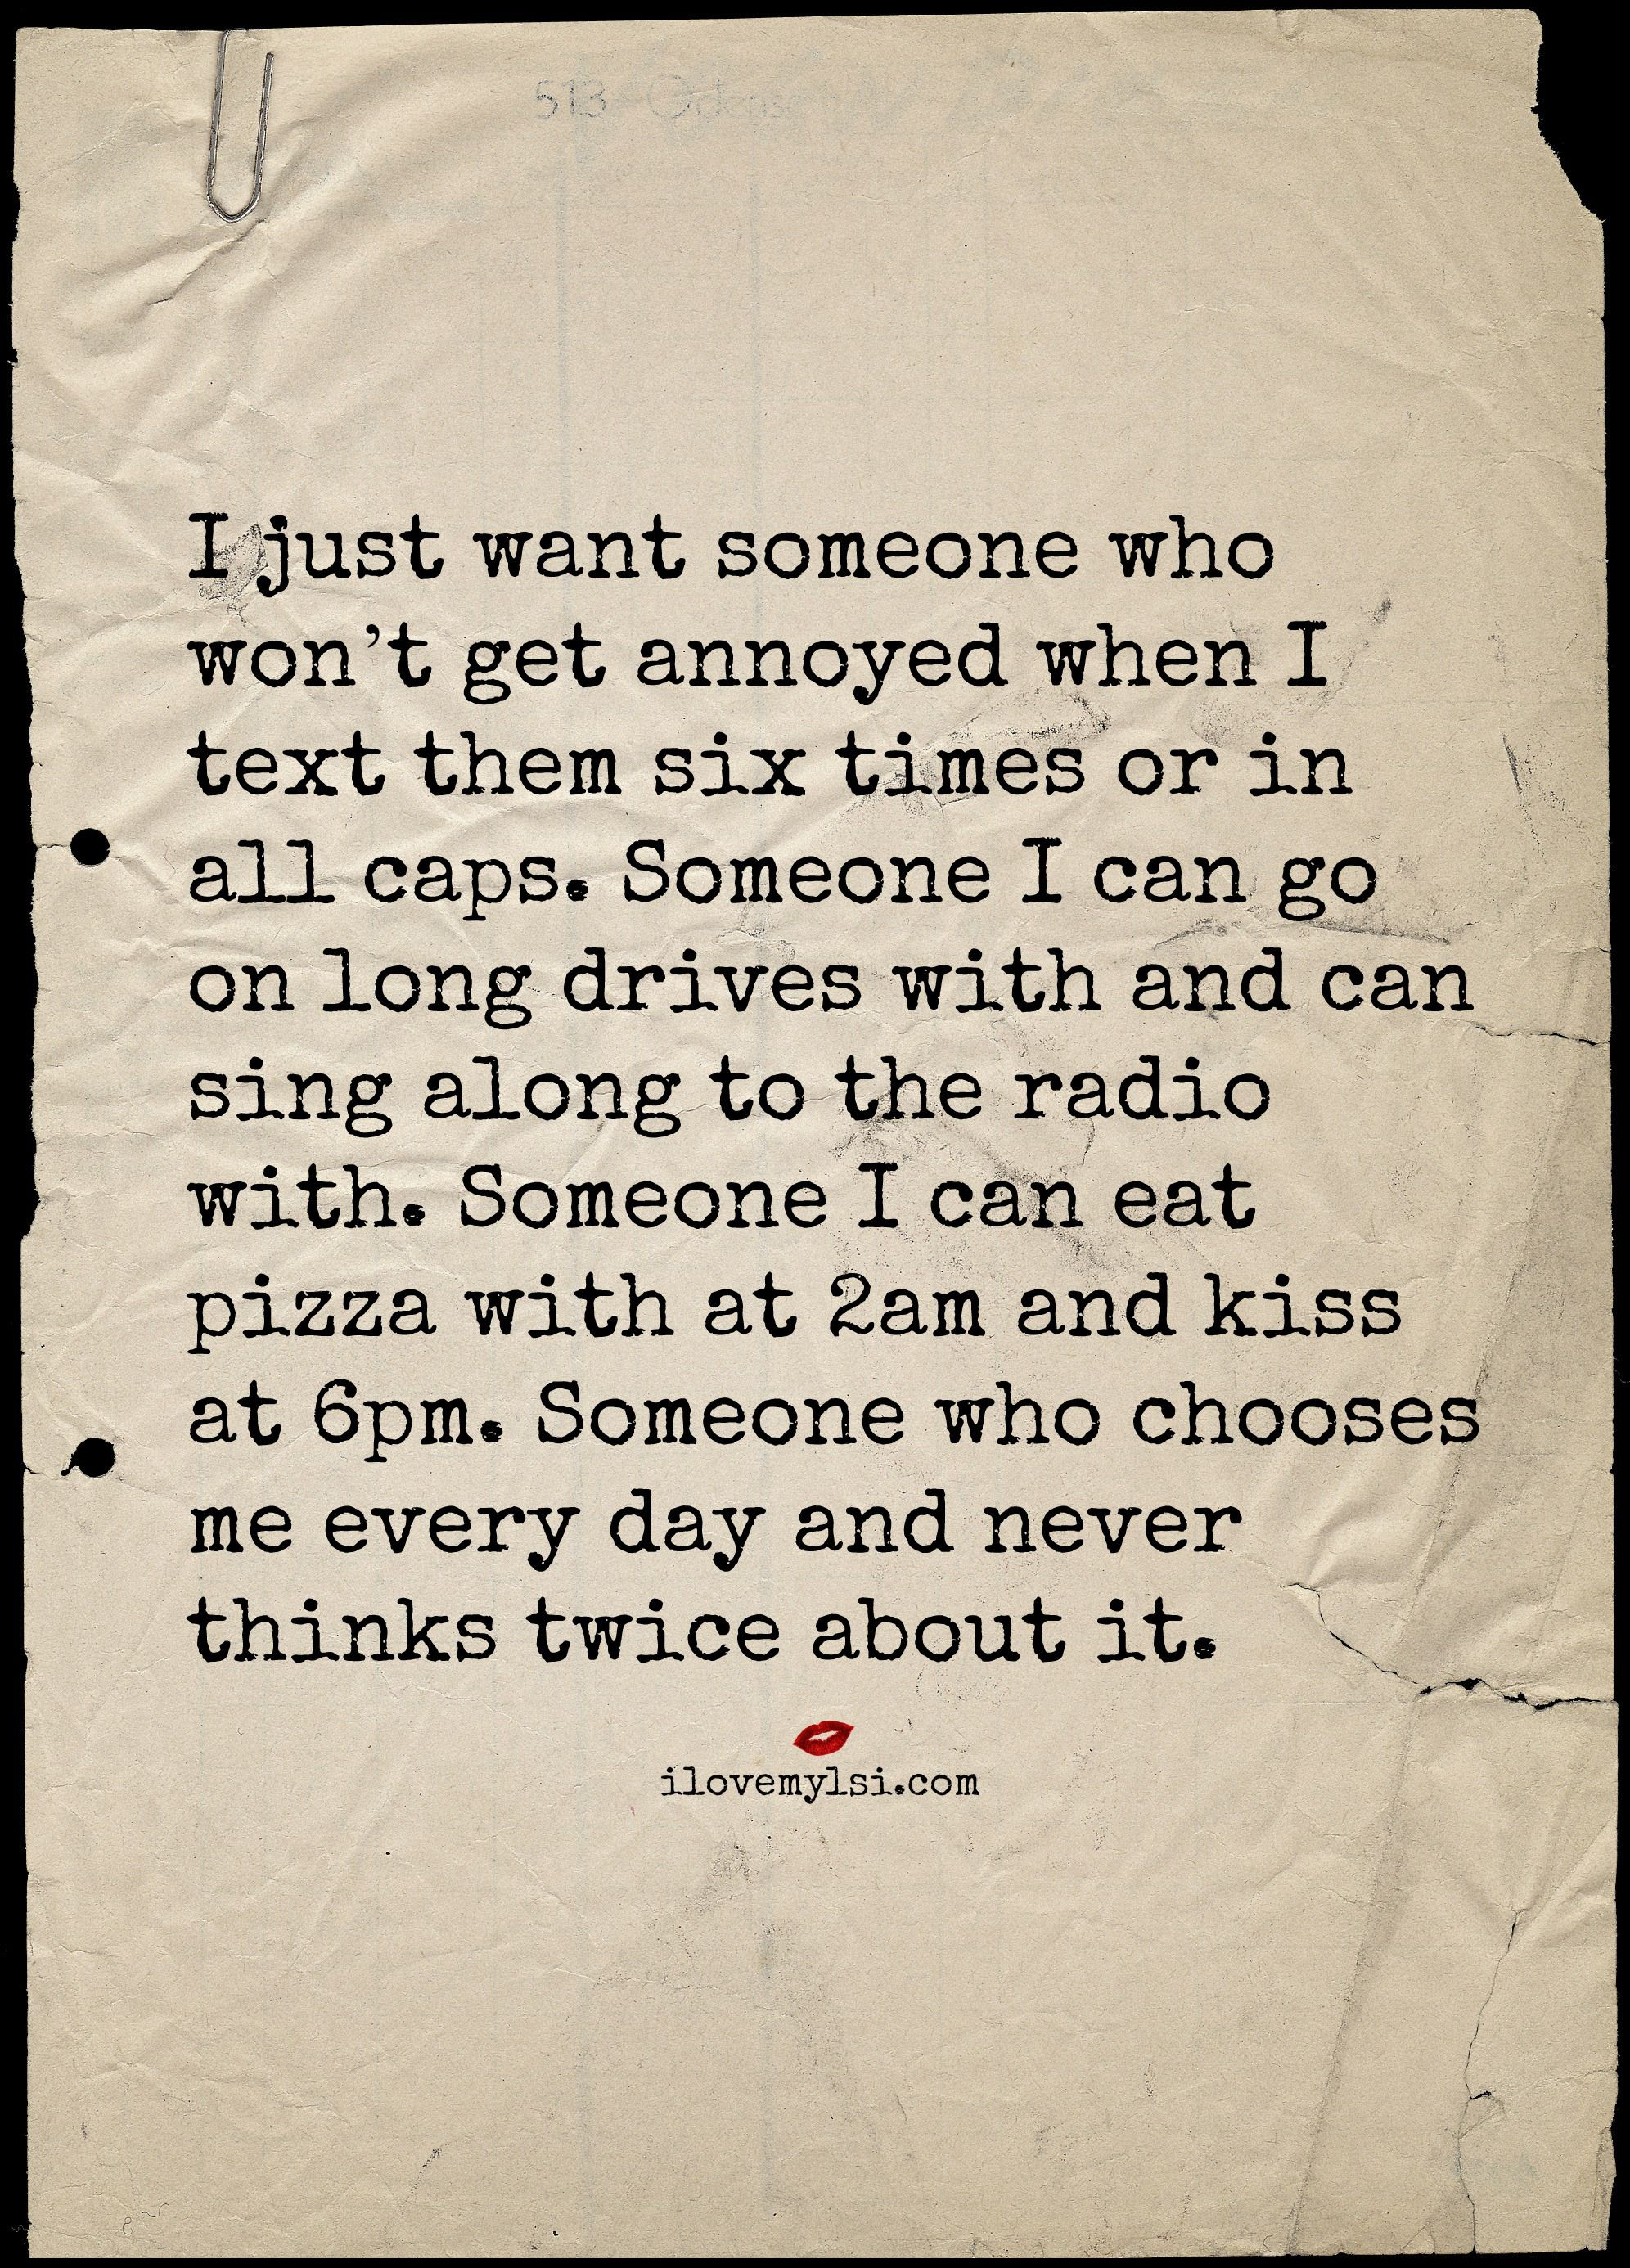 Citaten Love Me : I just want someone who chooses me citaten liefde en